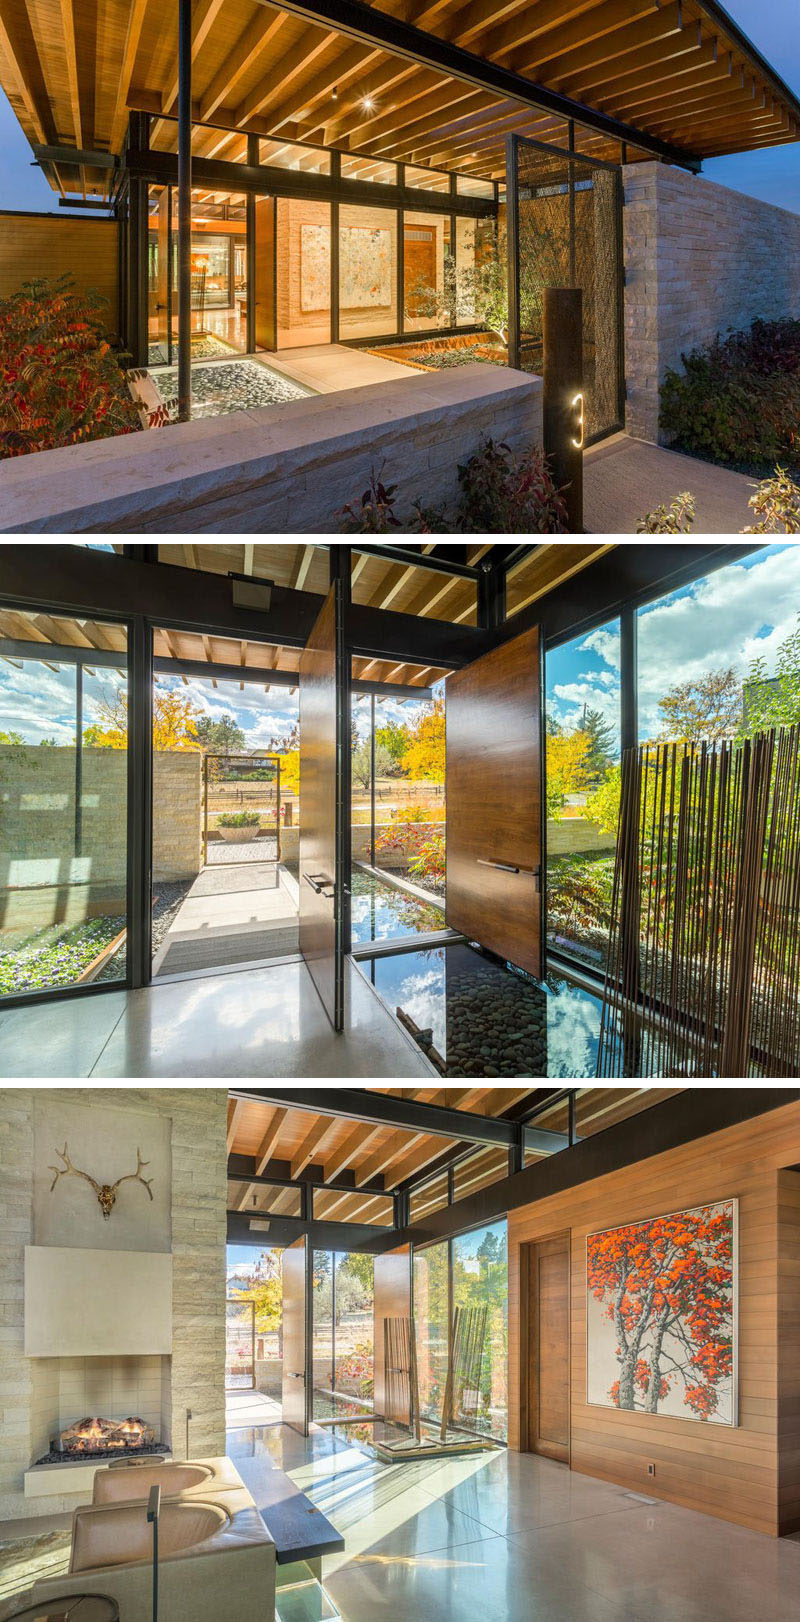 Stepping inside this home, there's a small water feature and garden to welcome you before entering through the large pivoting wood door.